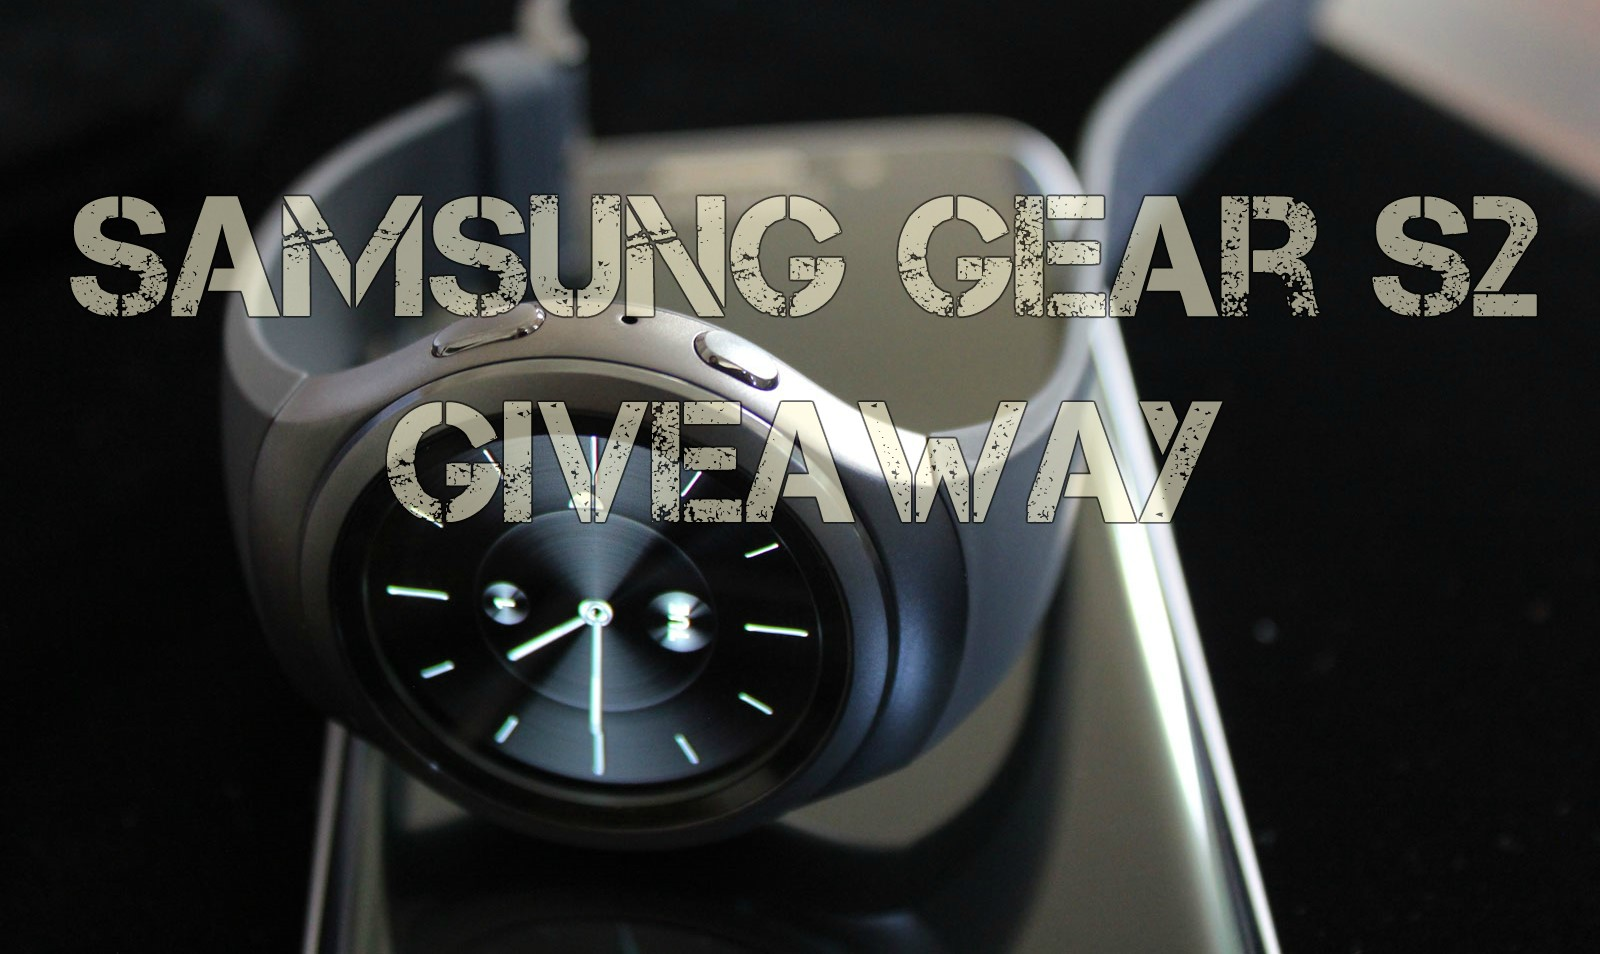 Samsung Gear S2 Giveaway!